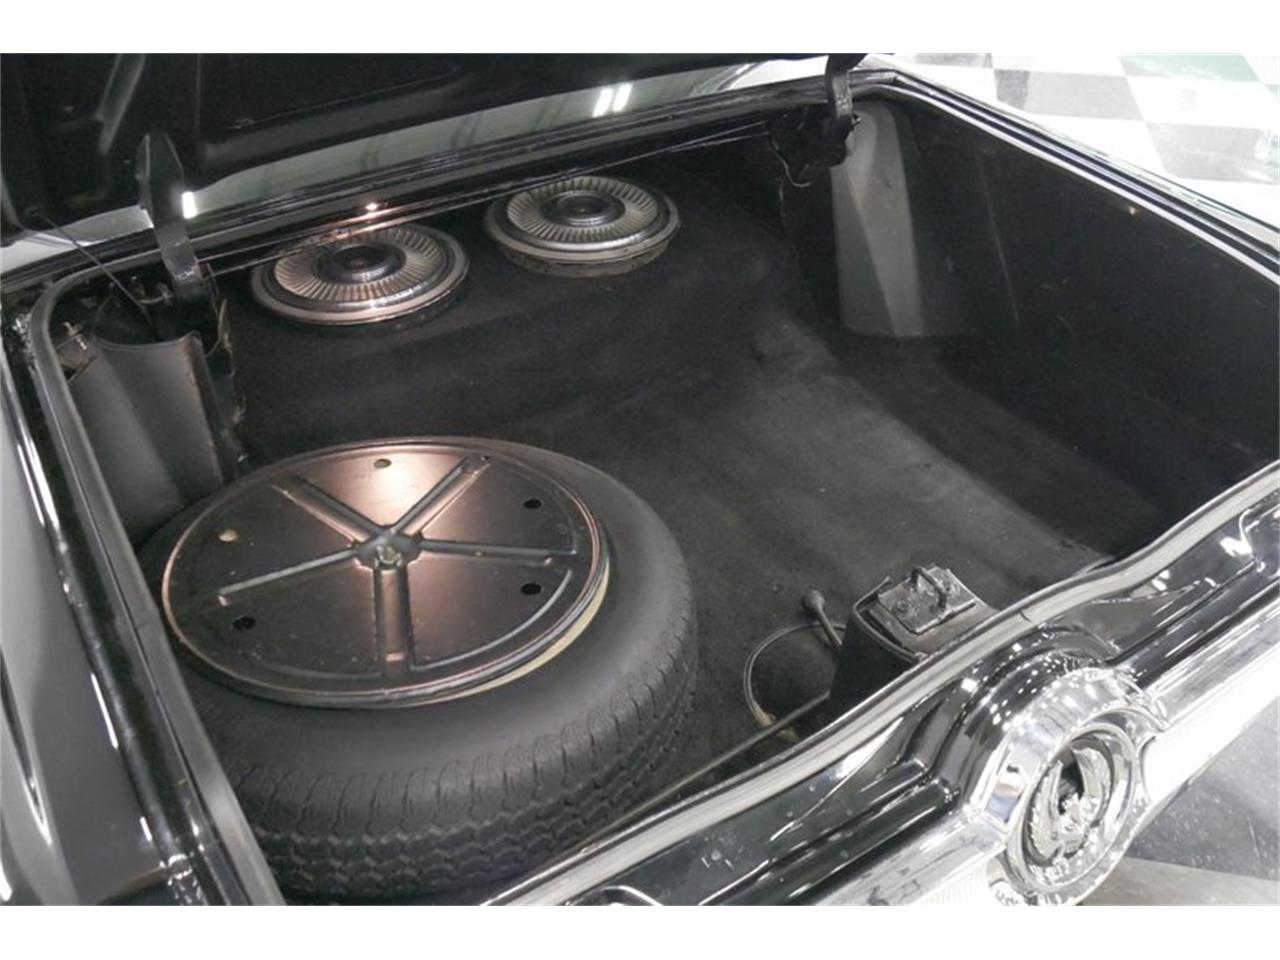 Large Picture of 1966 Chrysler Imperial - $18,995.00 - QAX3